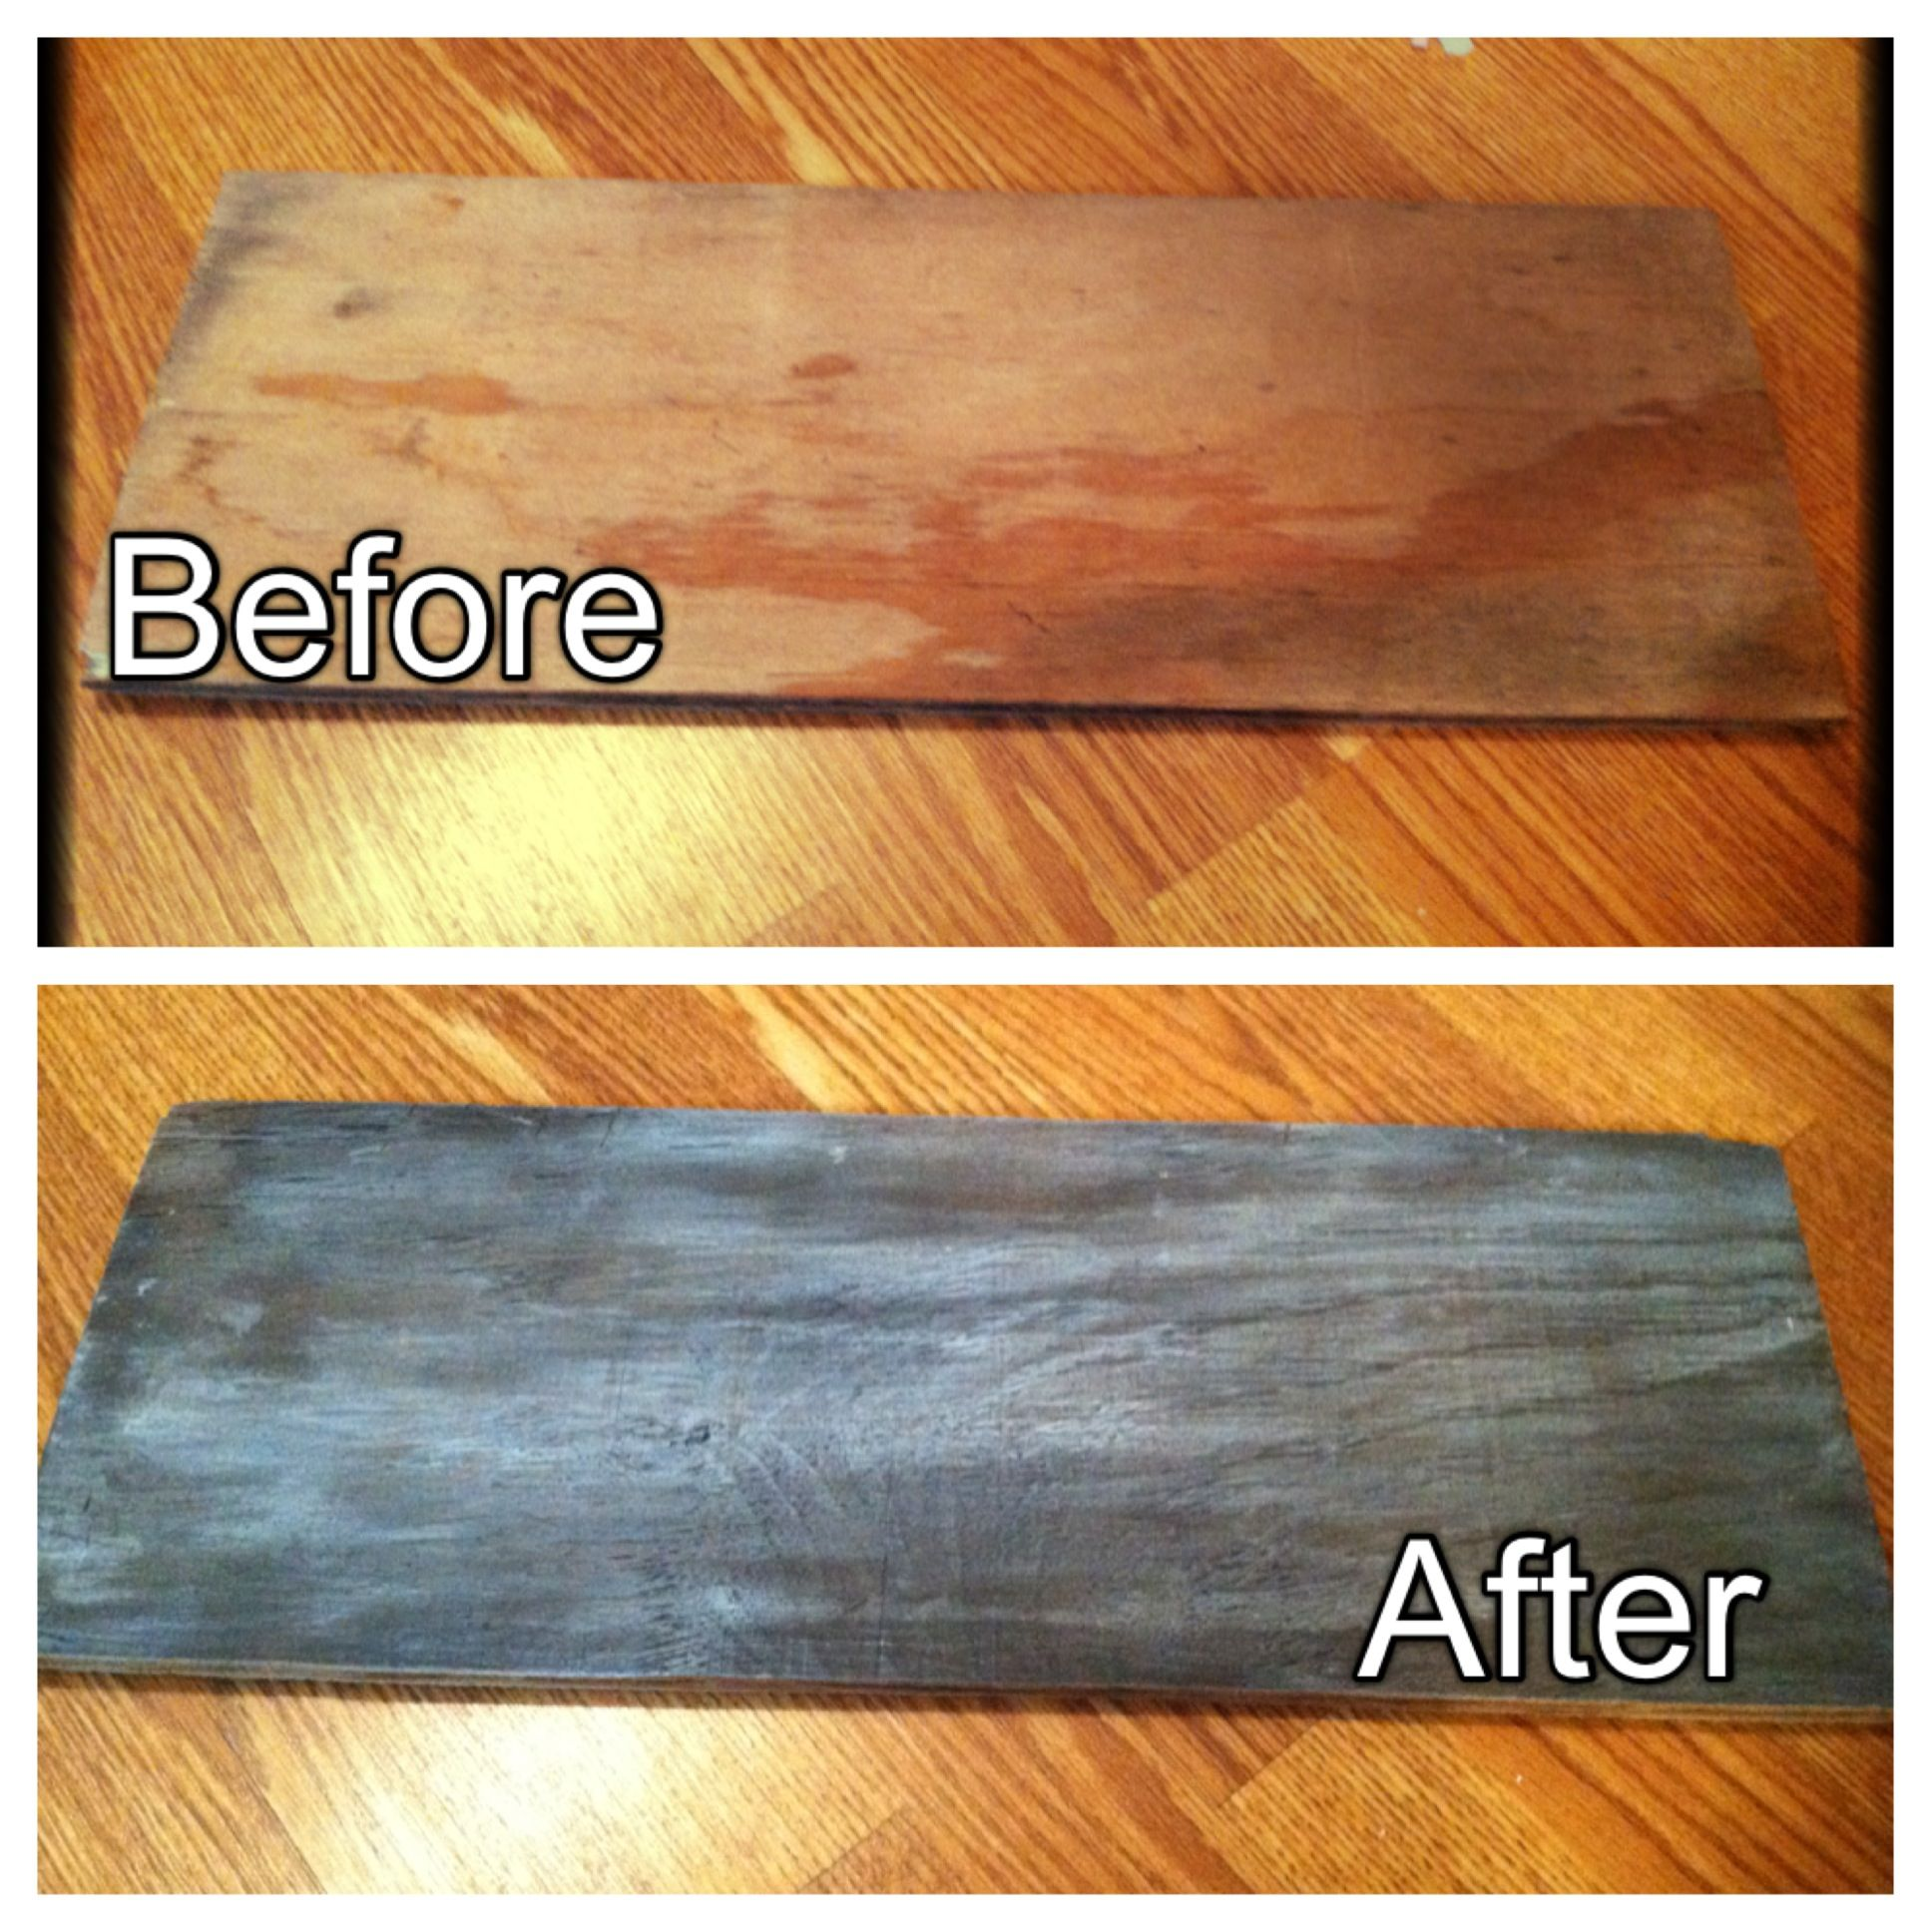 barn wood projects Sometimes a forgotten piece of old weathered wood can yield beautiful home decor items, just like these glorious barn wood projects.